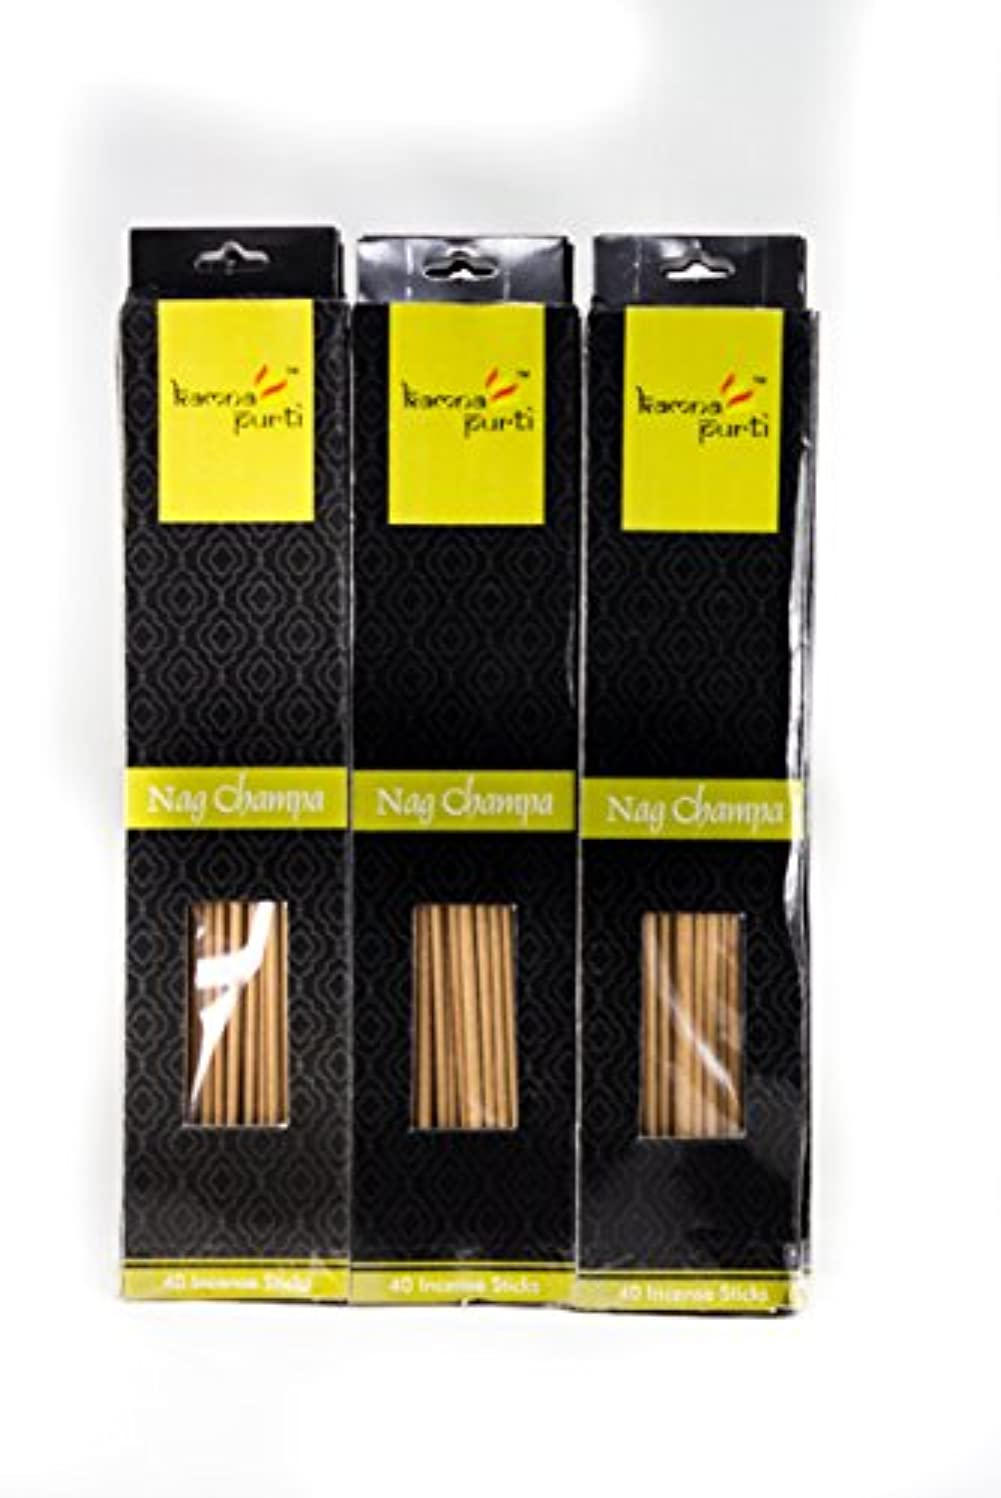 流暢仲介者家畜SBF Crafts 12セットIncense Sticks ( 40 Sticks /各) Nag Champa Highly Fragrance Incense Infused with Essential Oils...